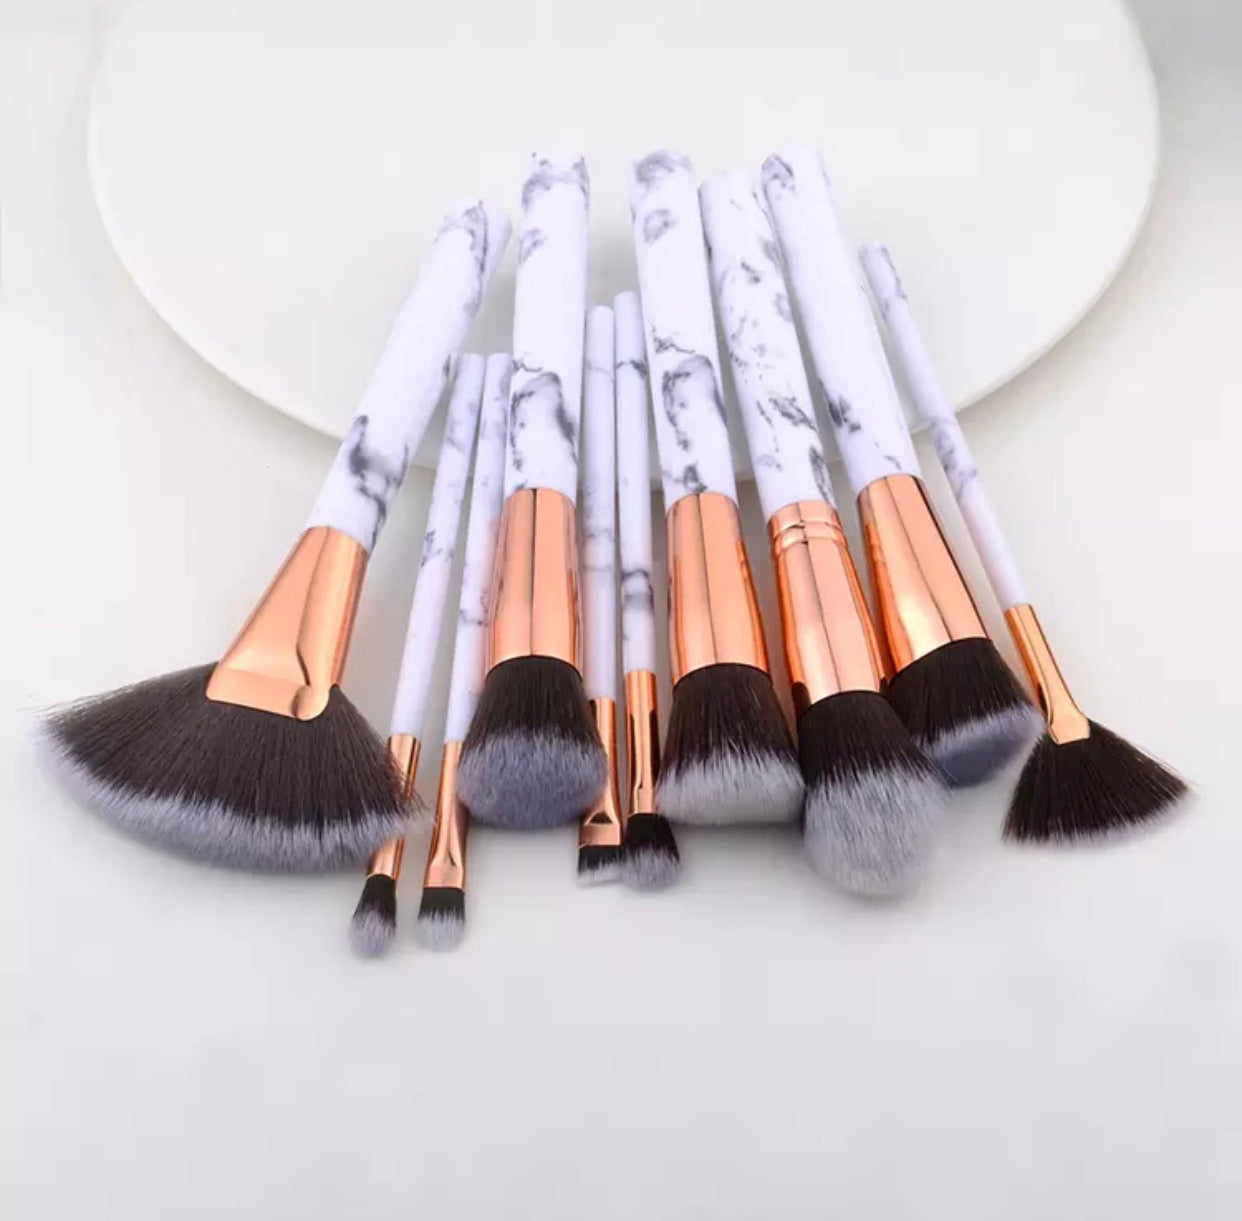 Lavish Life 10pc Brushset